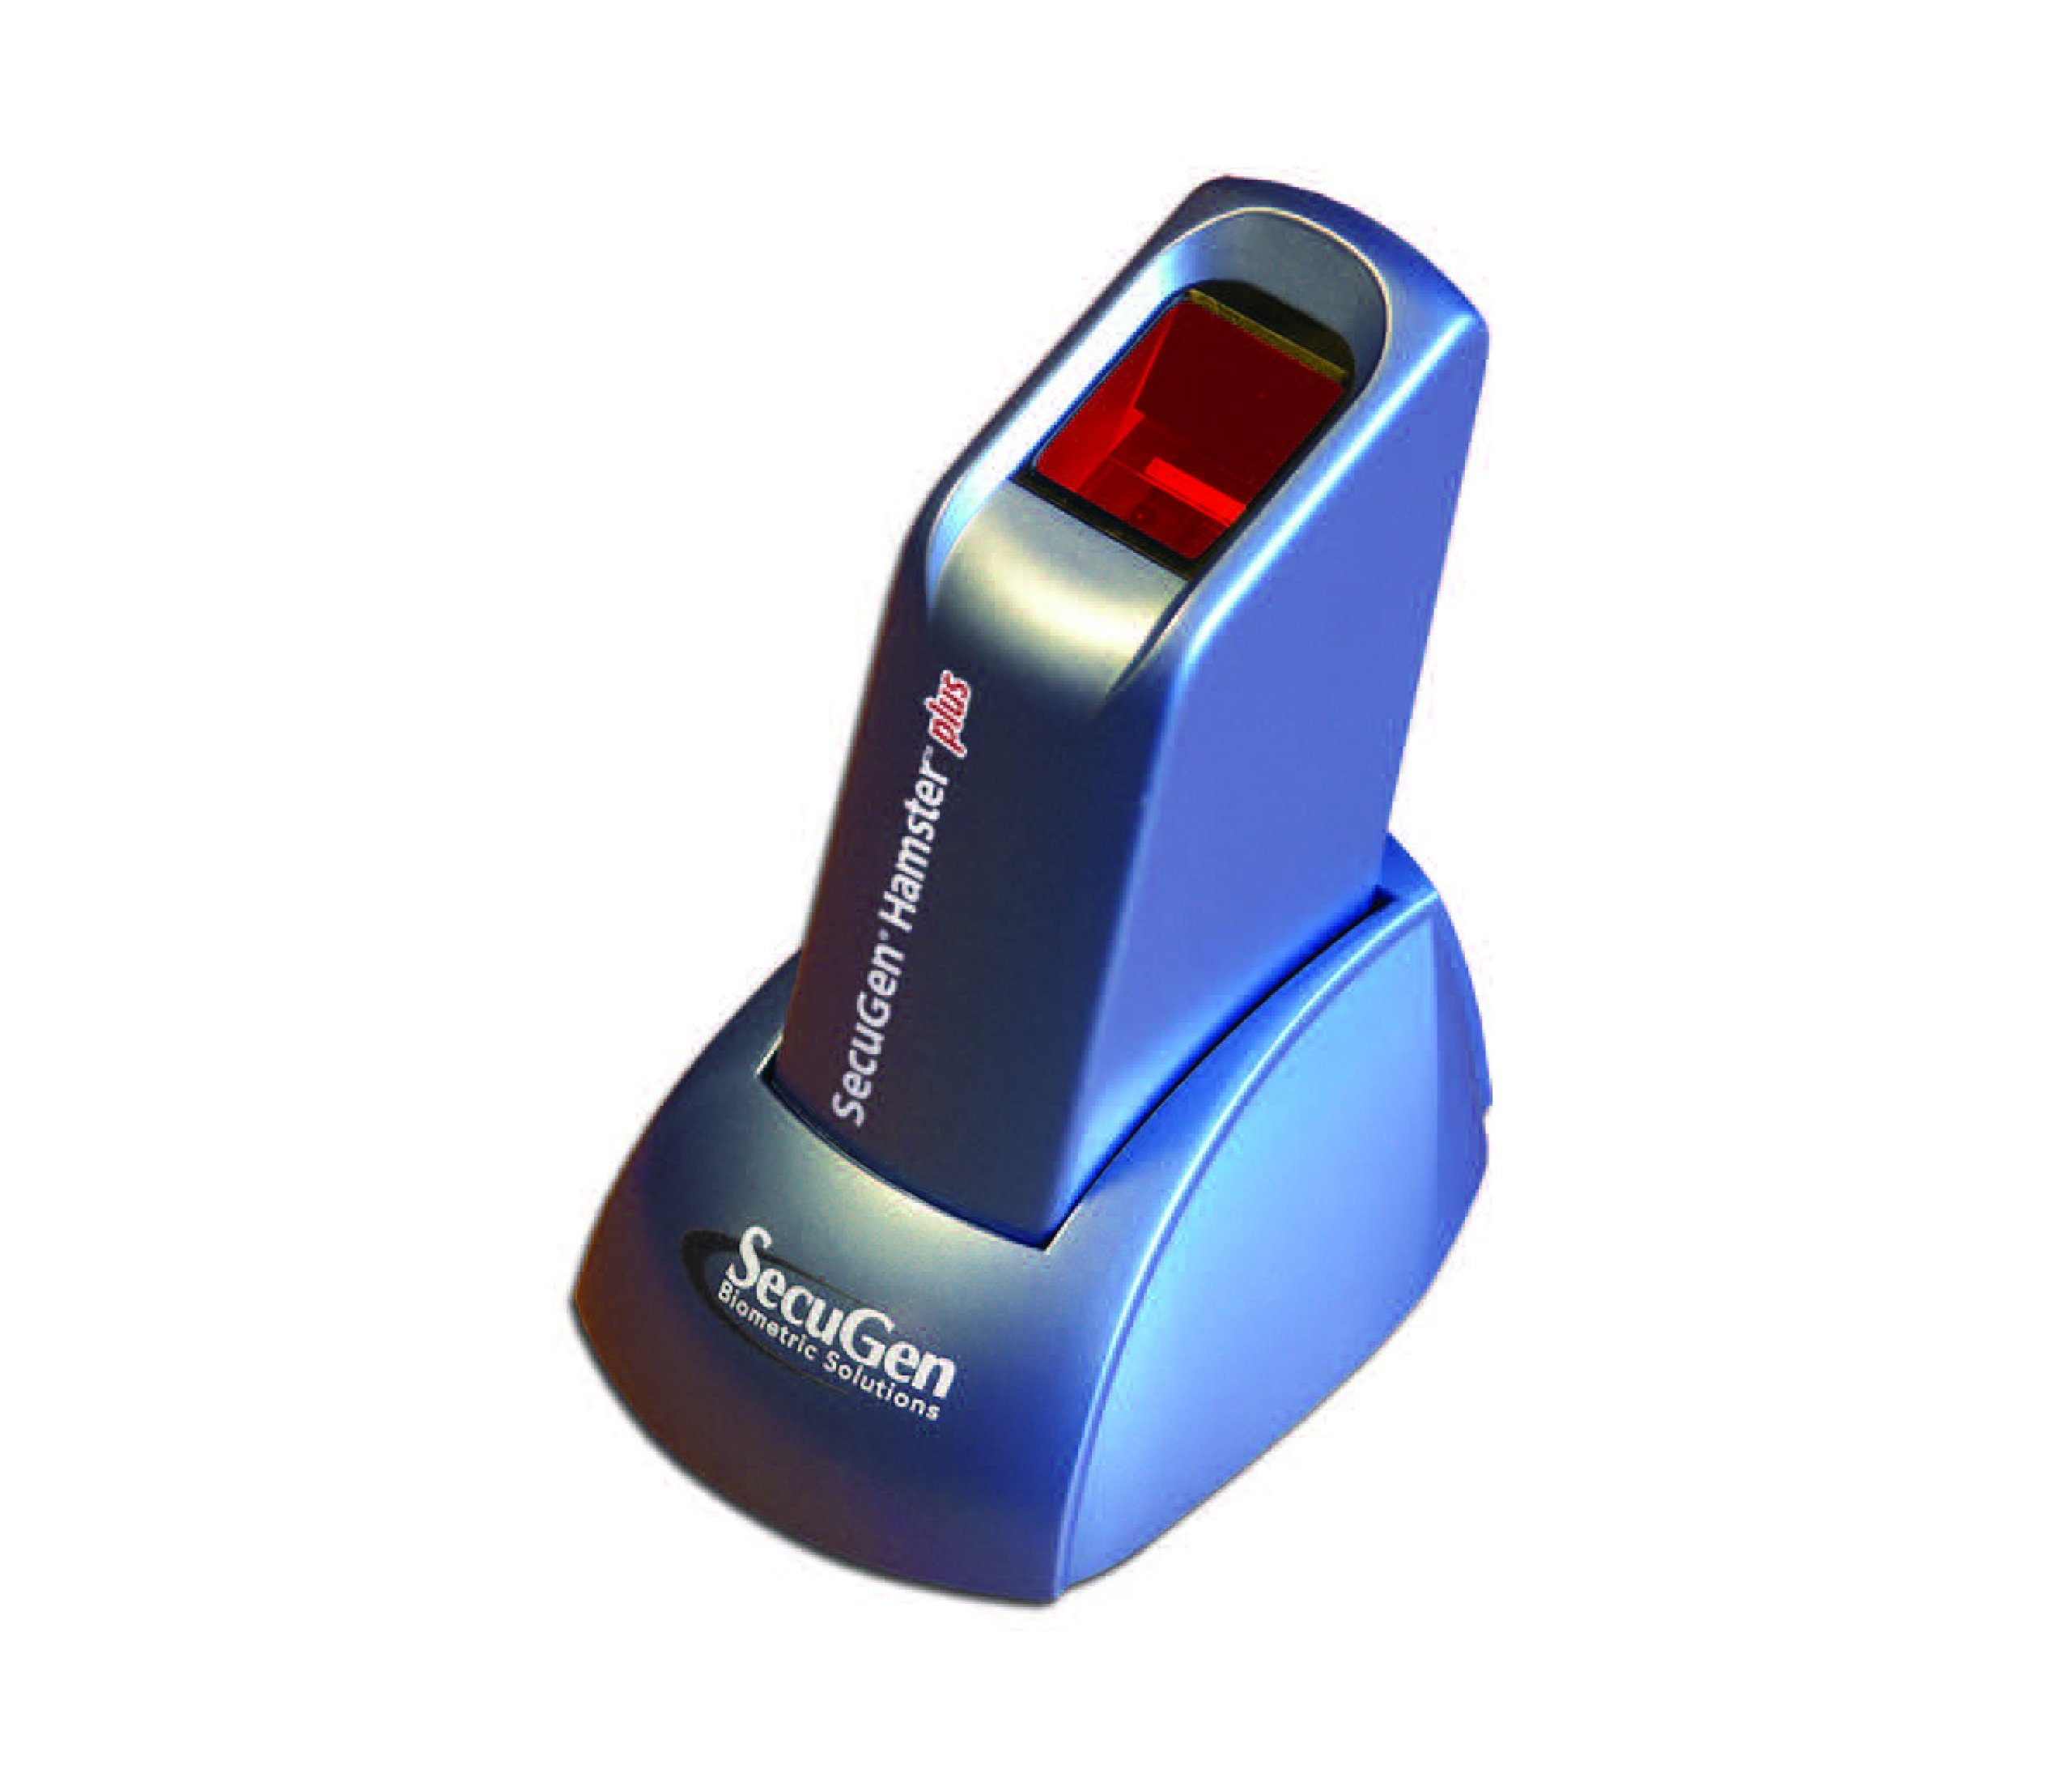 SecuGen Hamster Plus Fingerprint Scanner by SecuGen